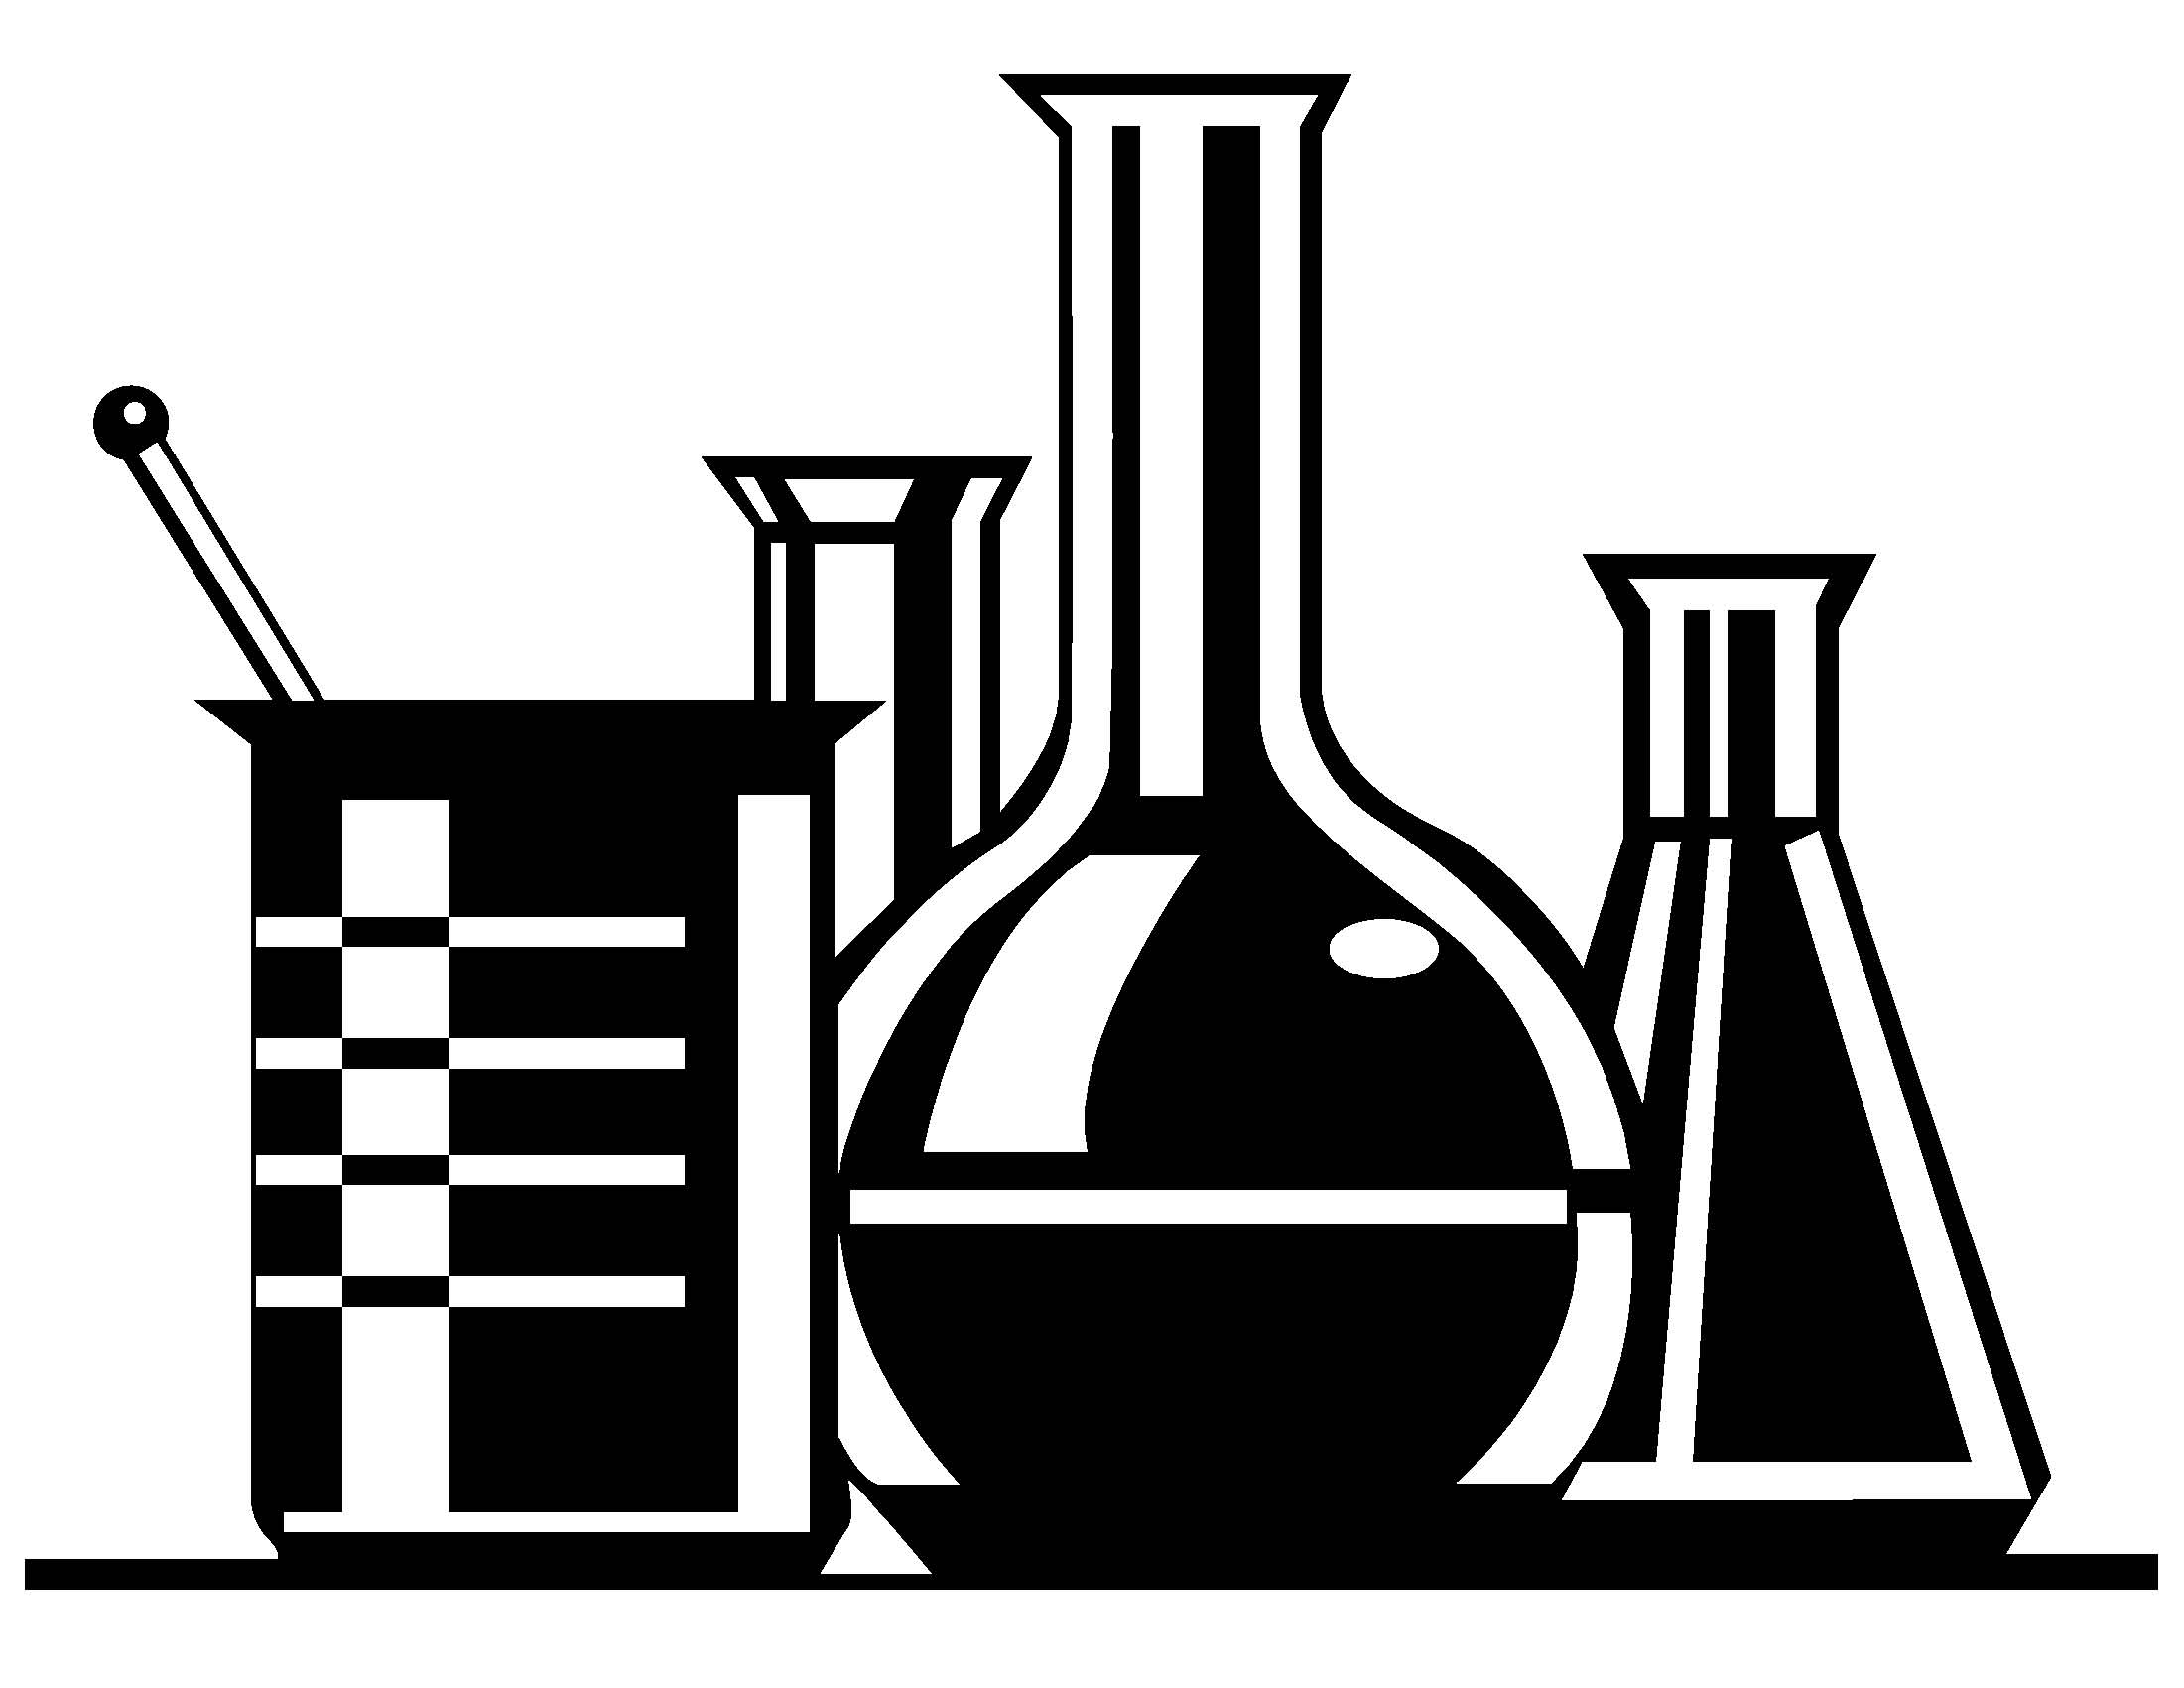 Beaker clipart black and white. Awesome science design digital